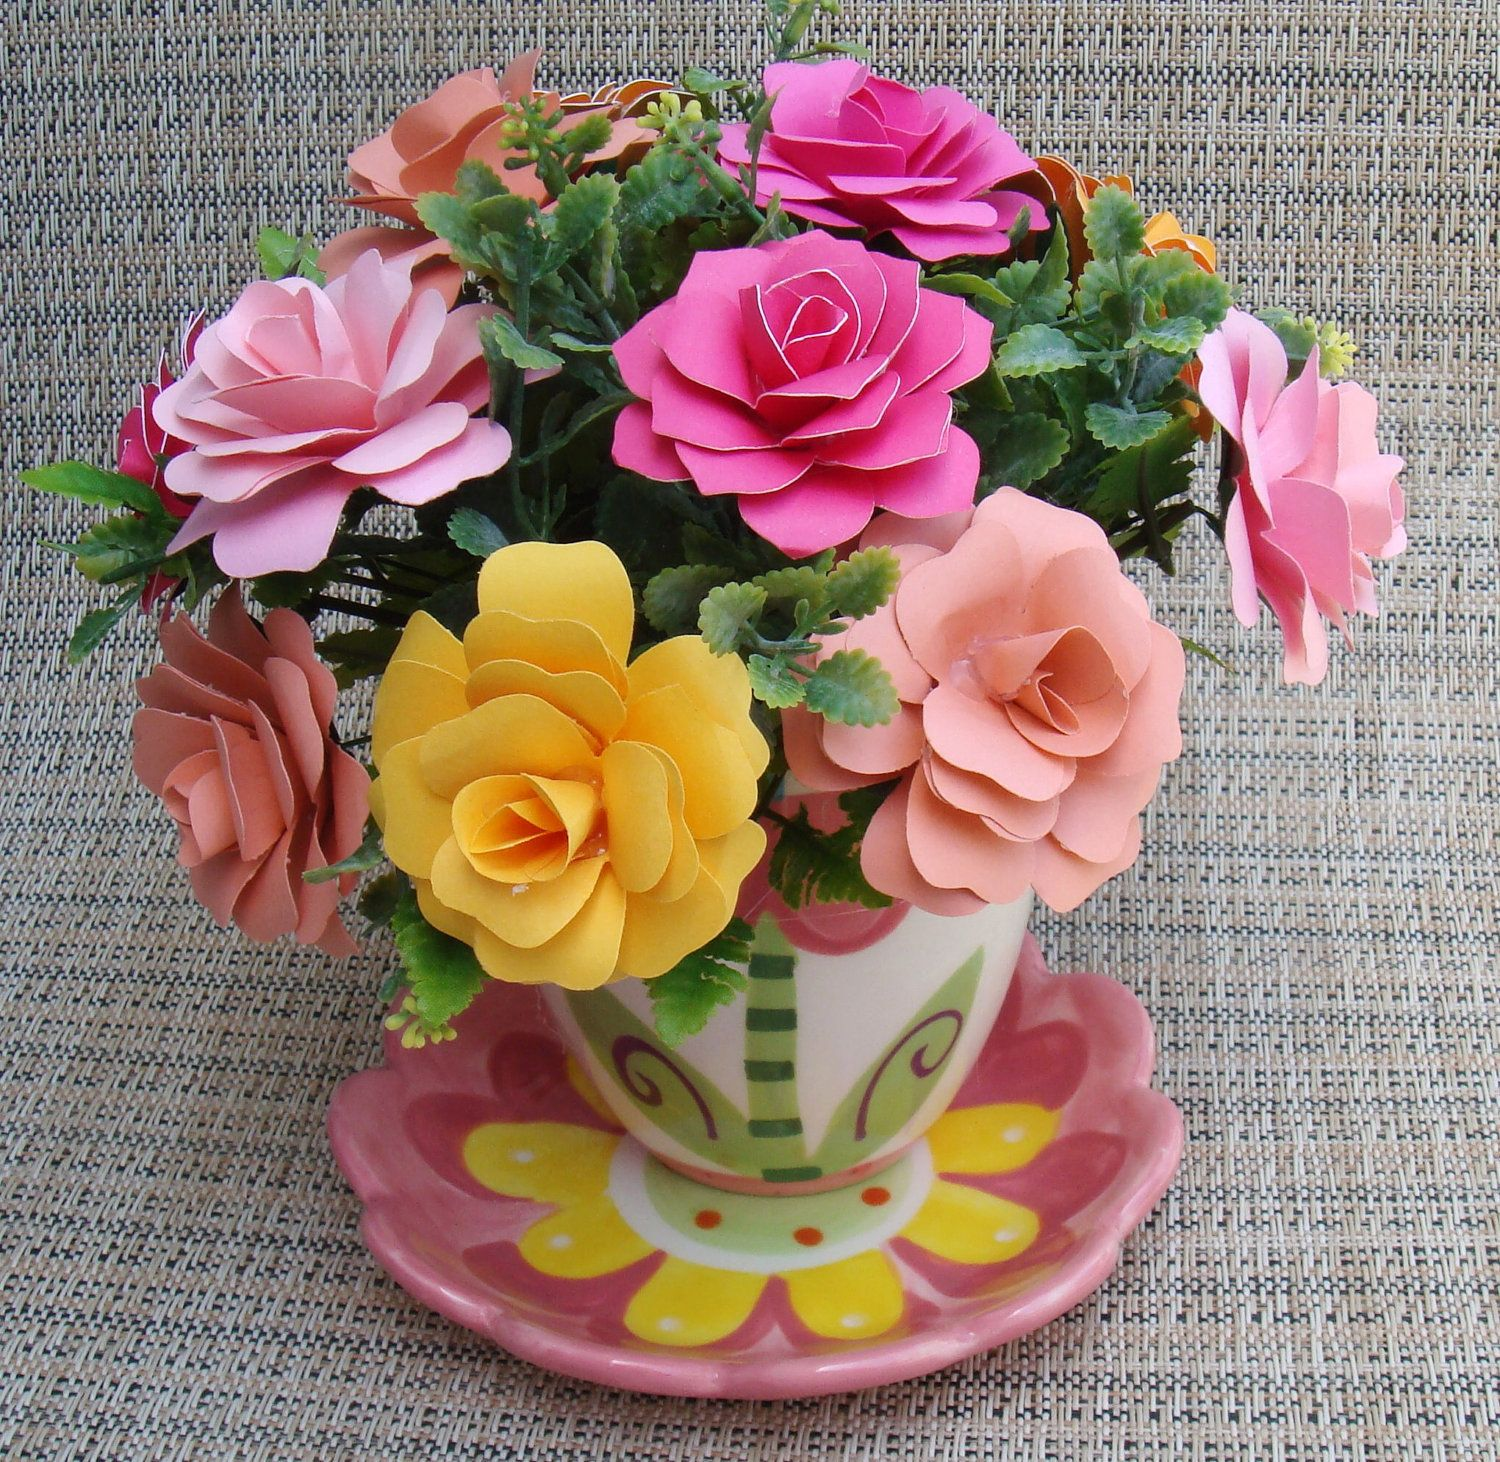 Paper flower arrangements google search party ideas pinterest paper flower arrangements google search mightylinksfo